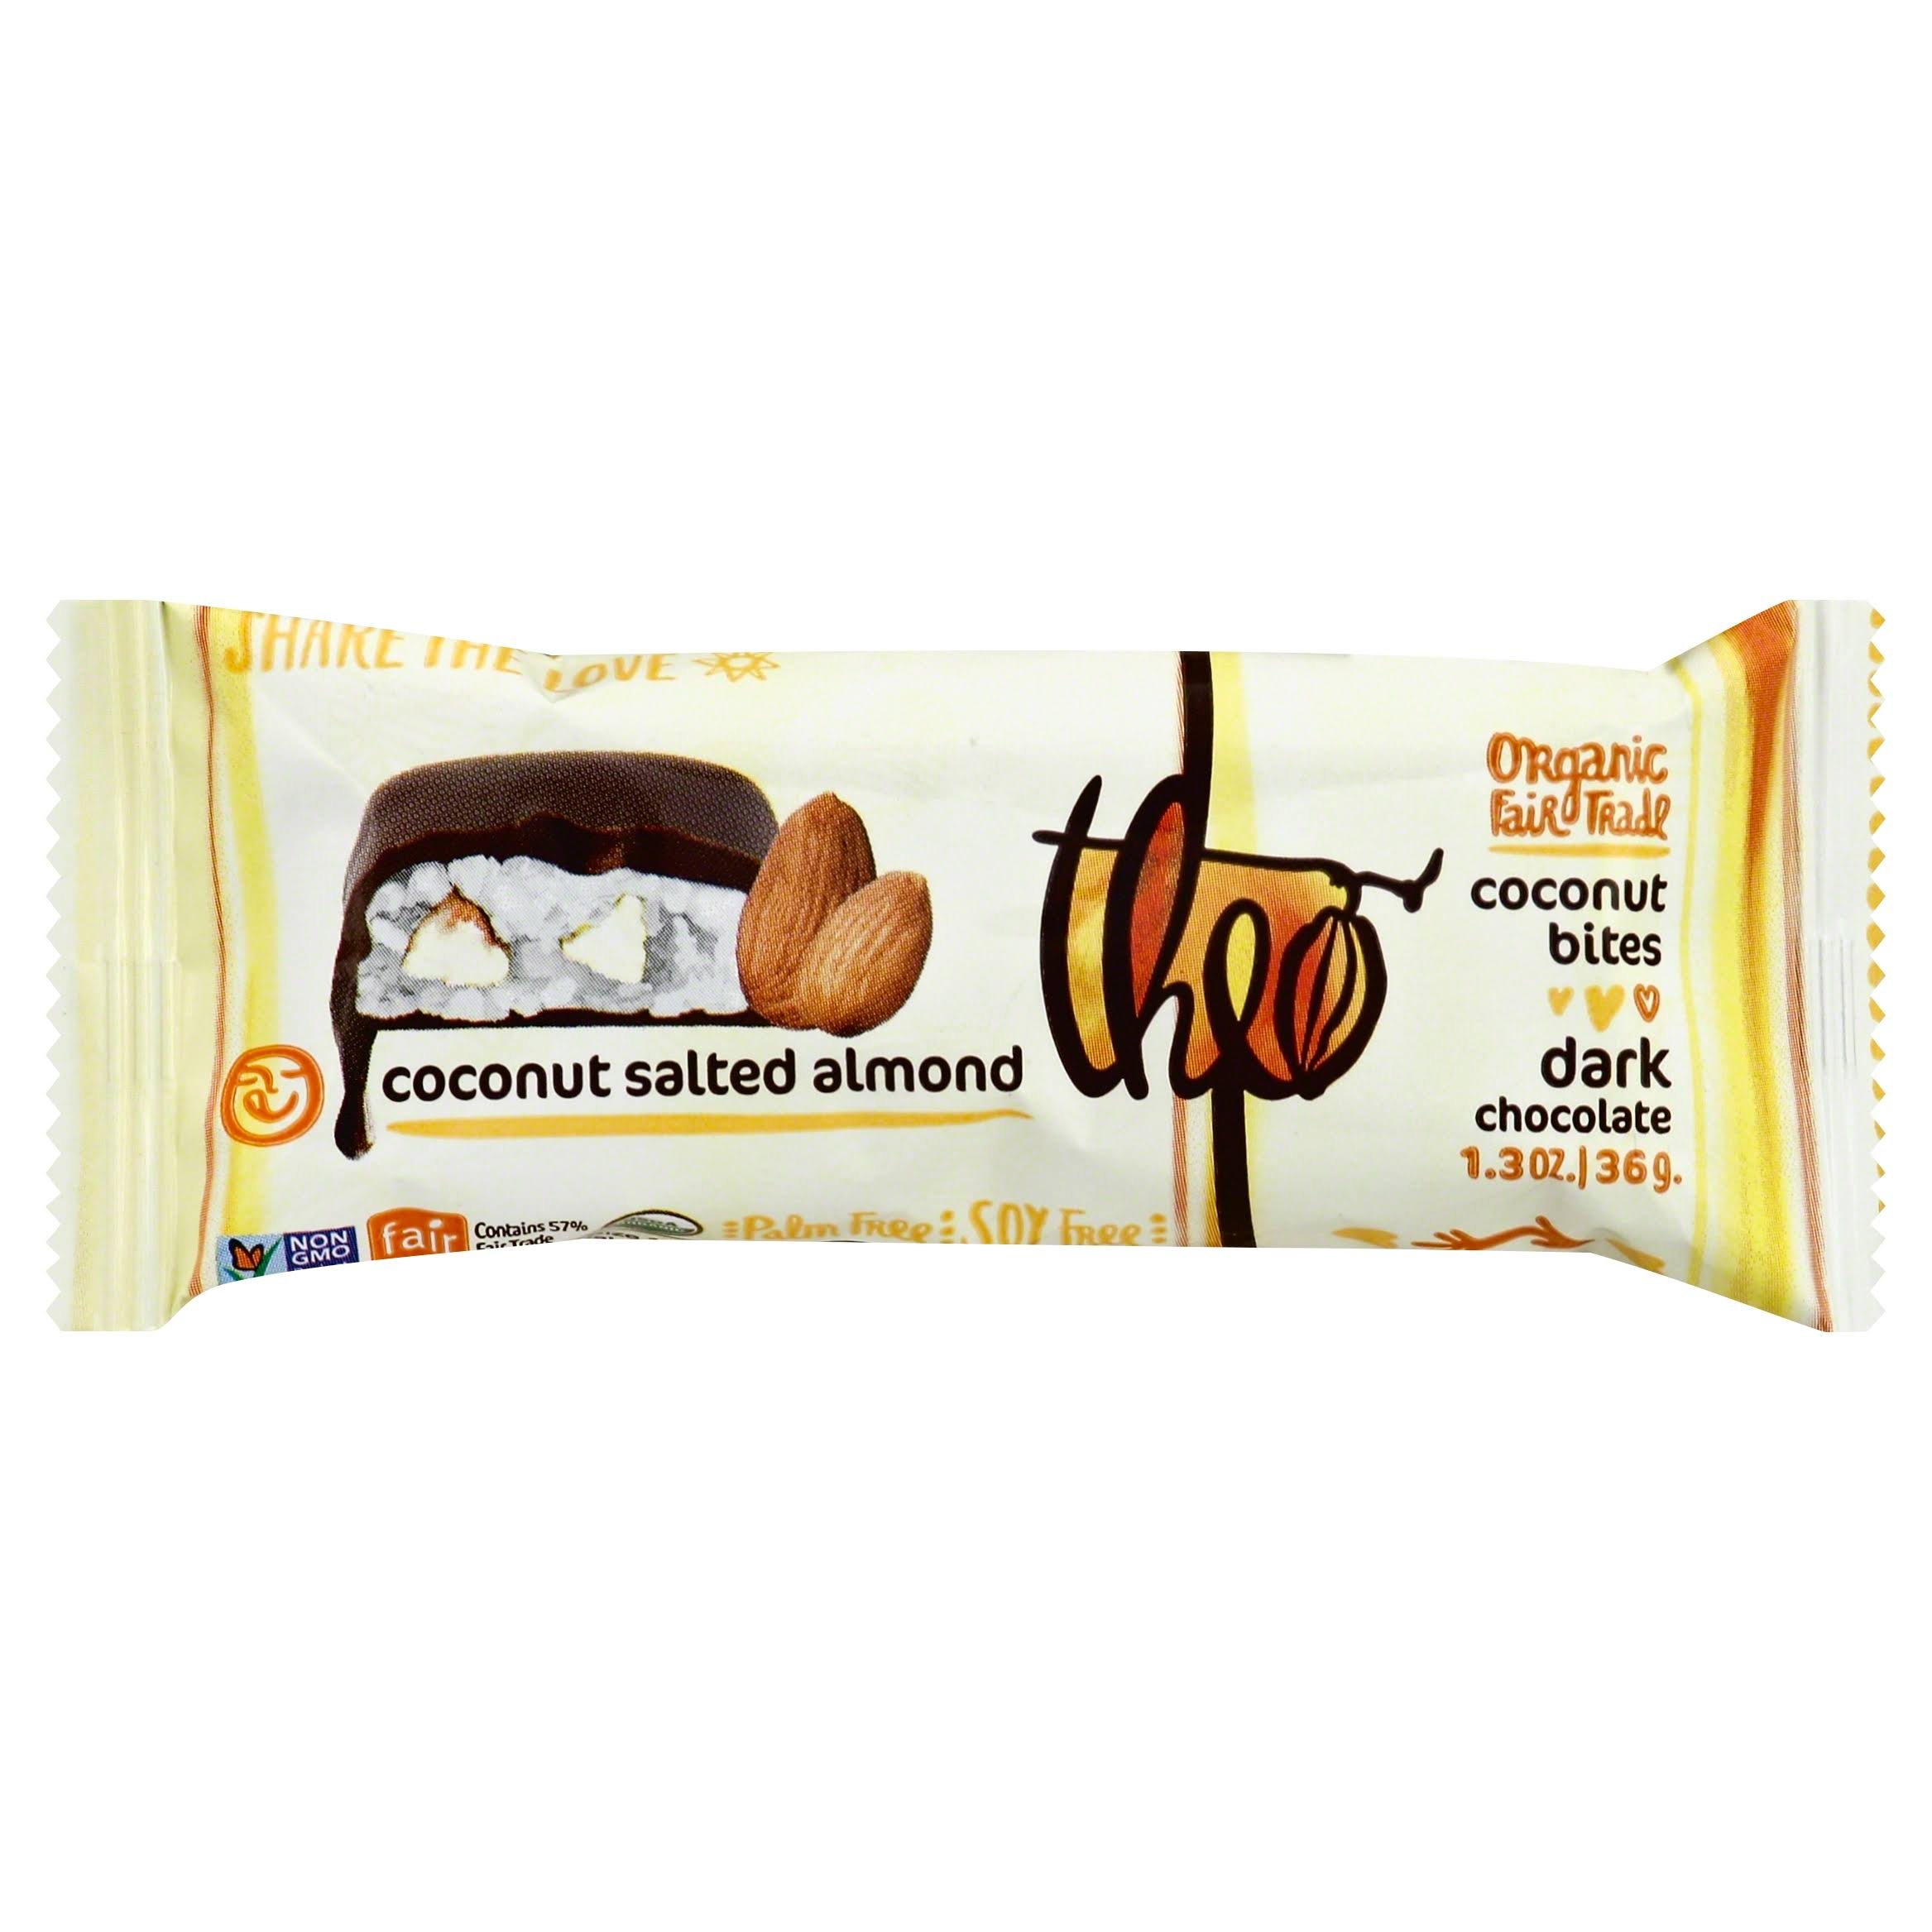 Theo Coconut Bites, Dark Chocolate, Coconut Salted Almond - 1.3 oz